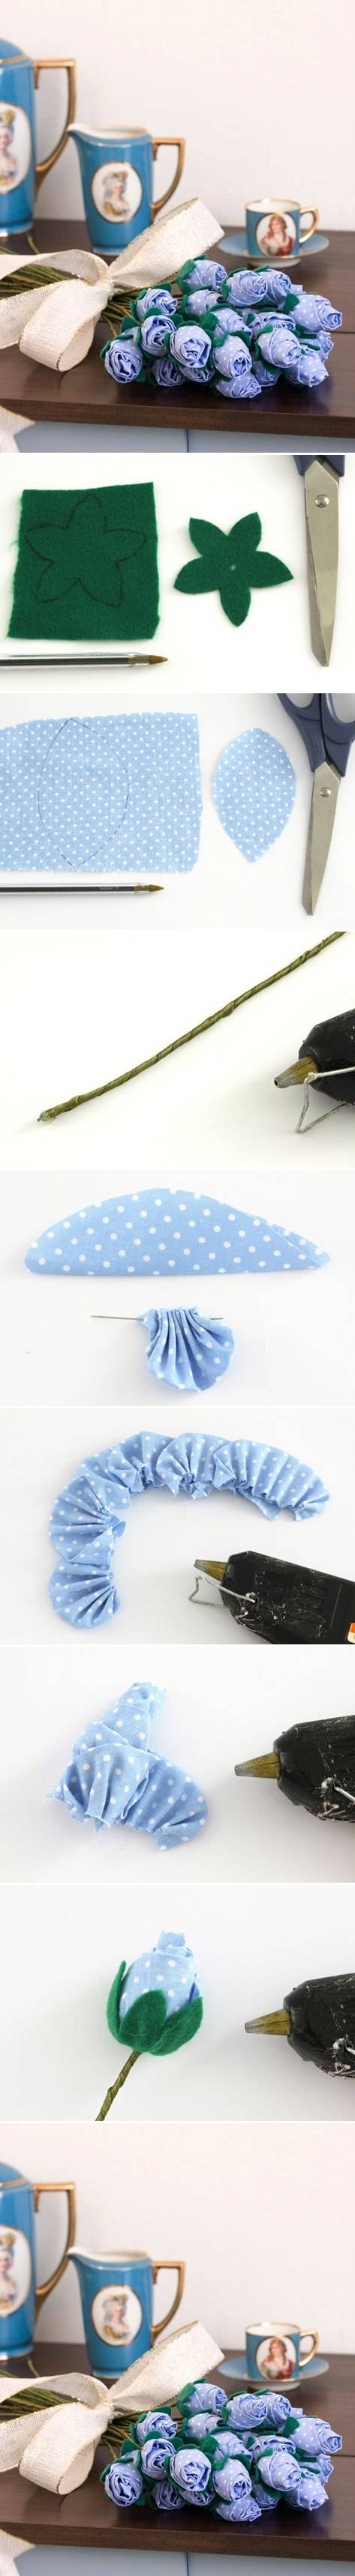 How to make Lilac Fabric Rose flowers step by step DIY tutorial instructions